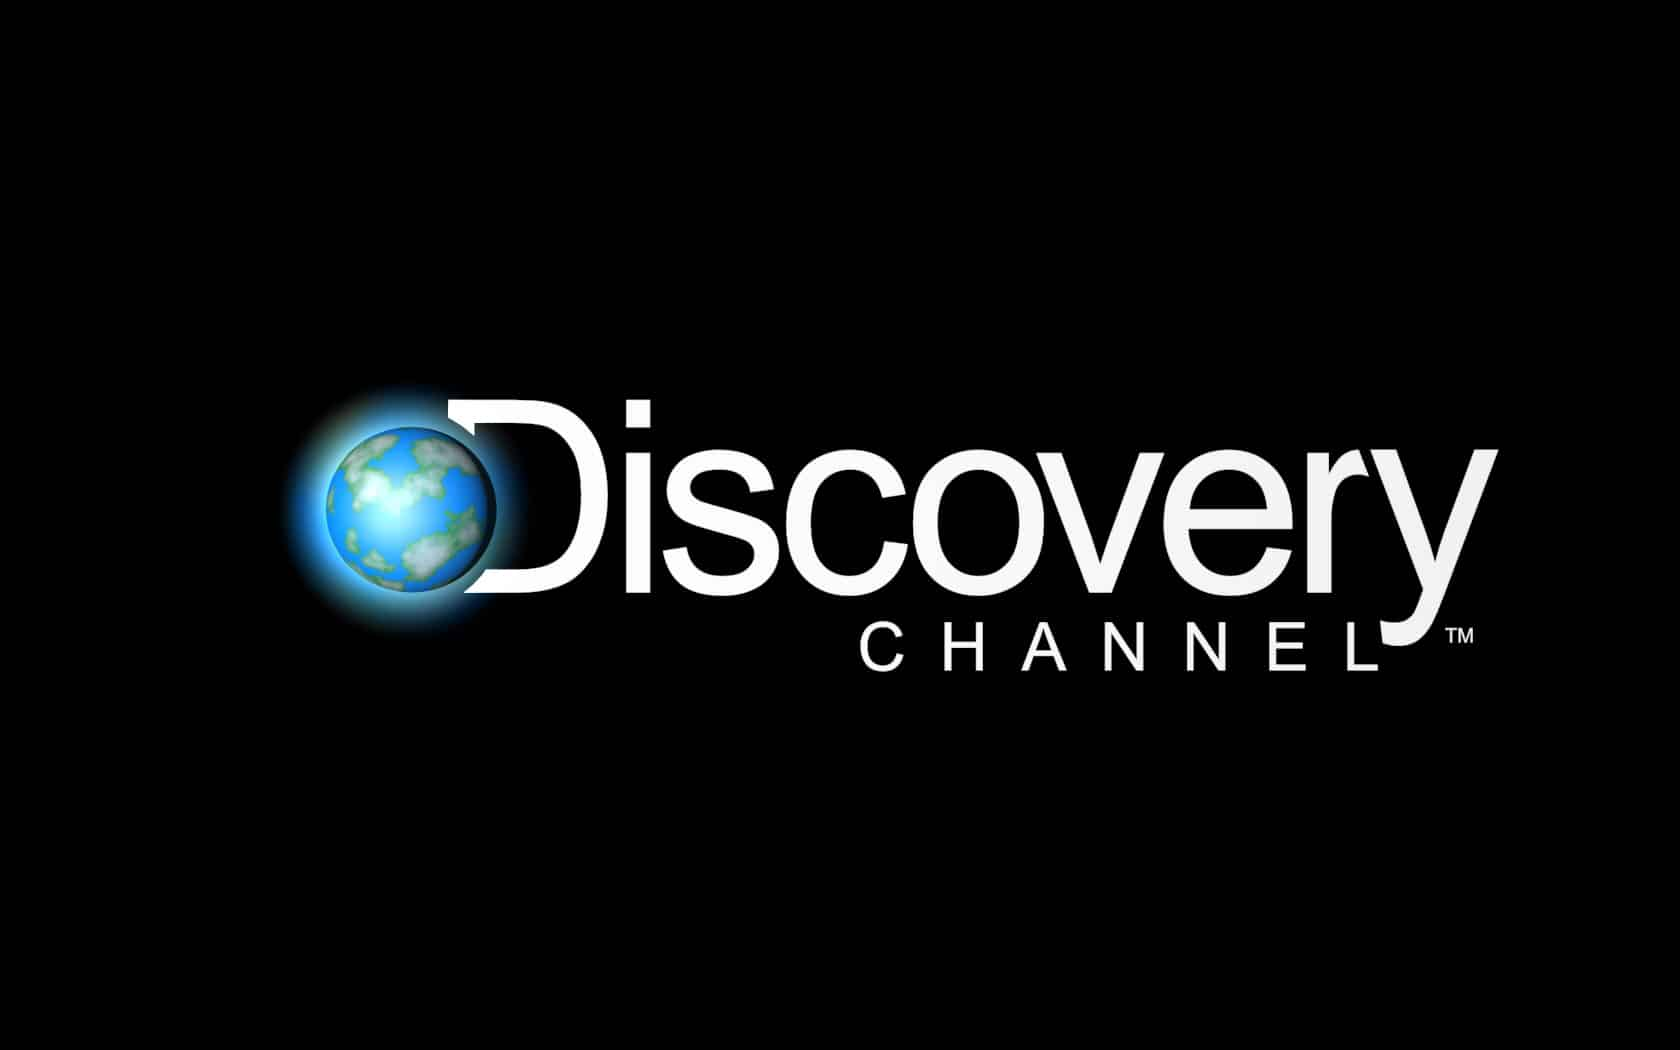 Discovery_Channel